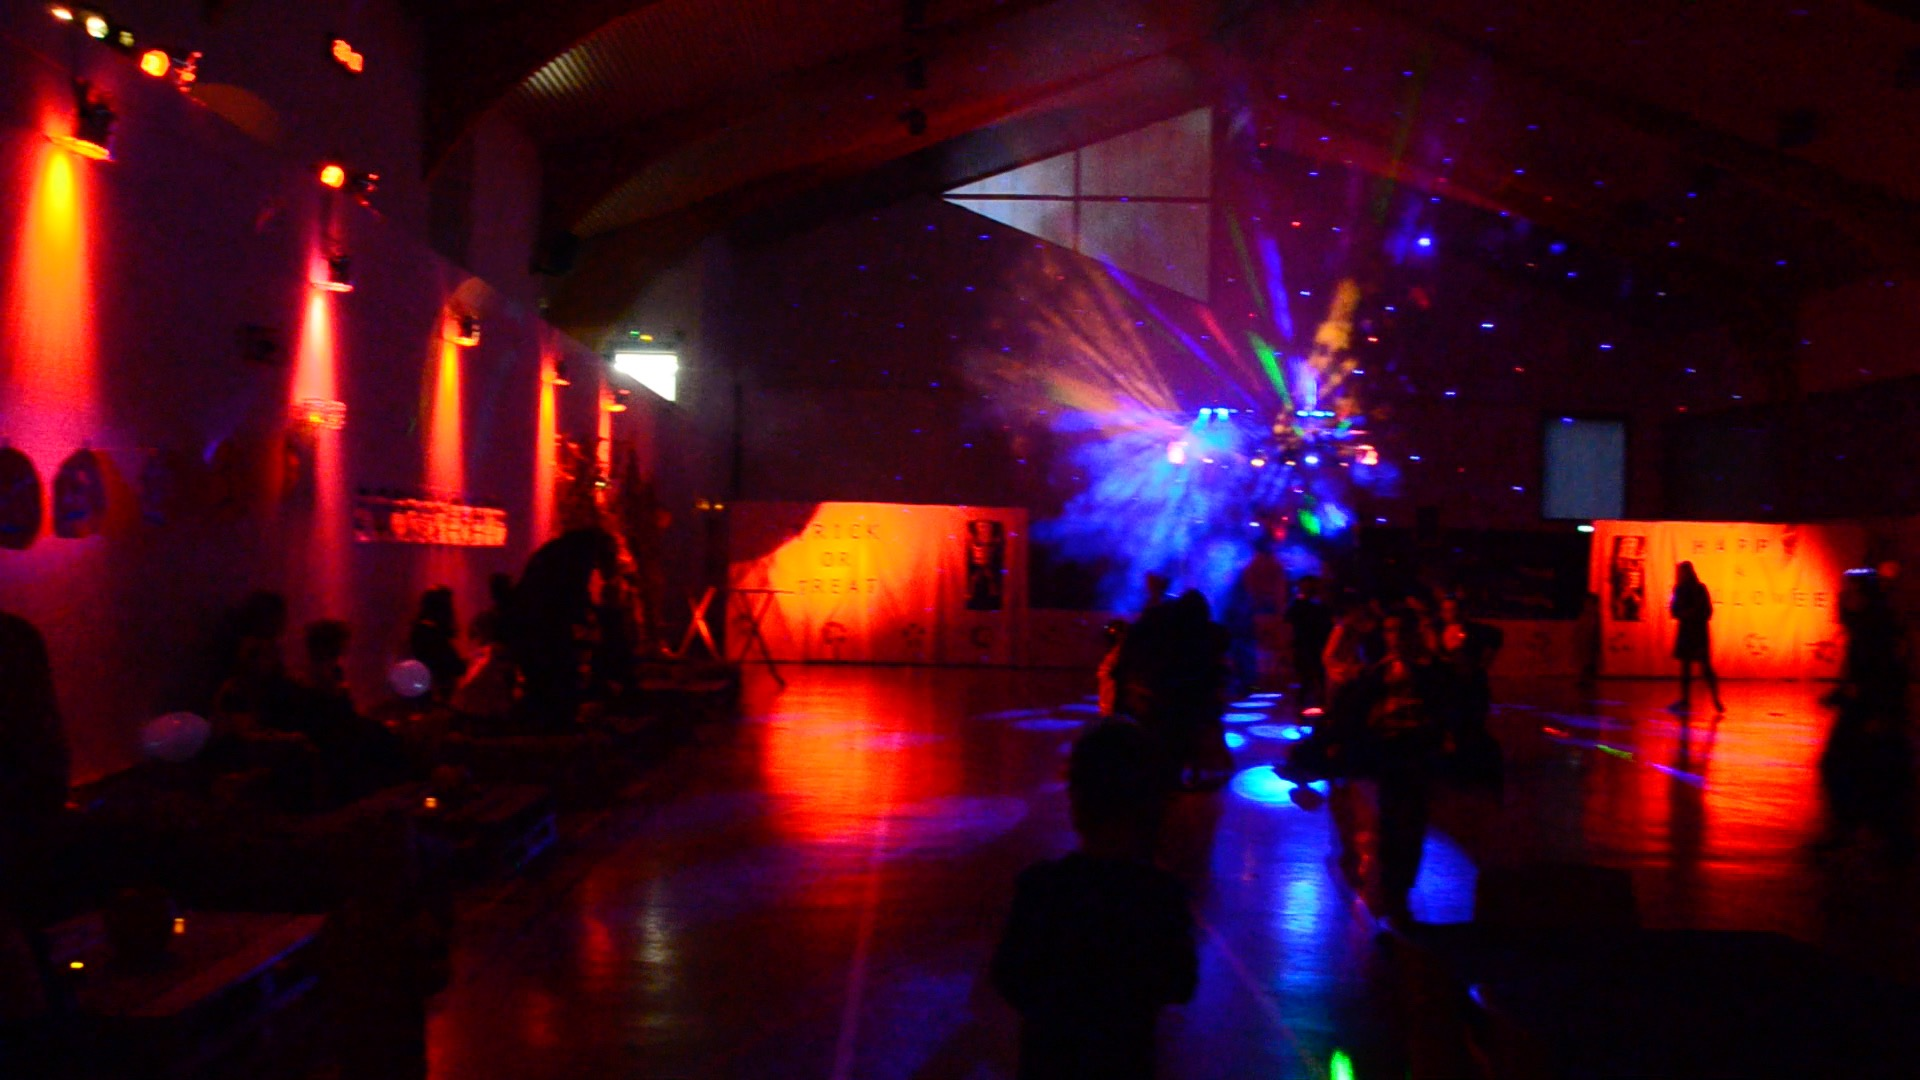 halloween-family-party-2016-prevessin-sou-grands-chenes-salle-lumieres